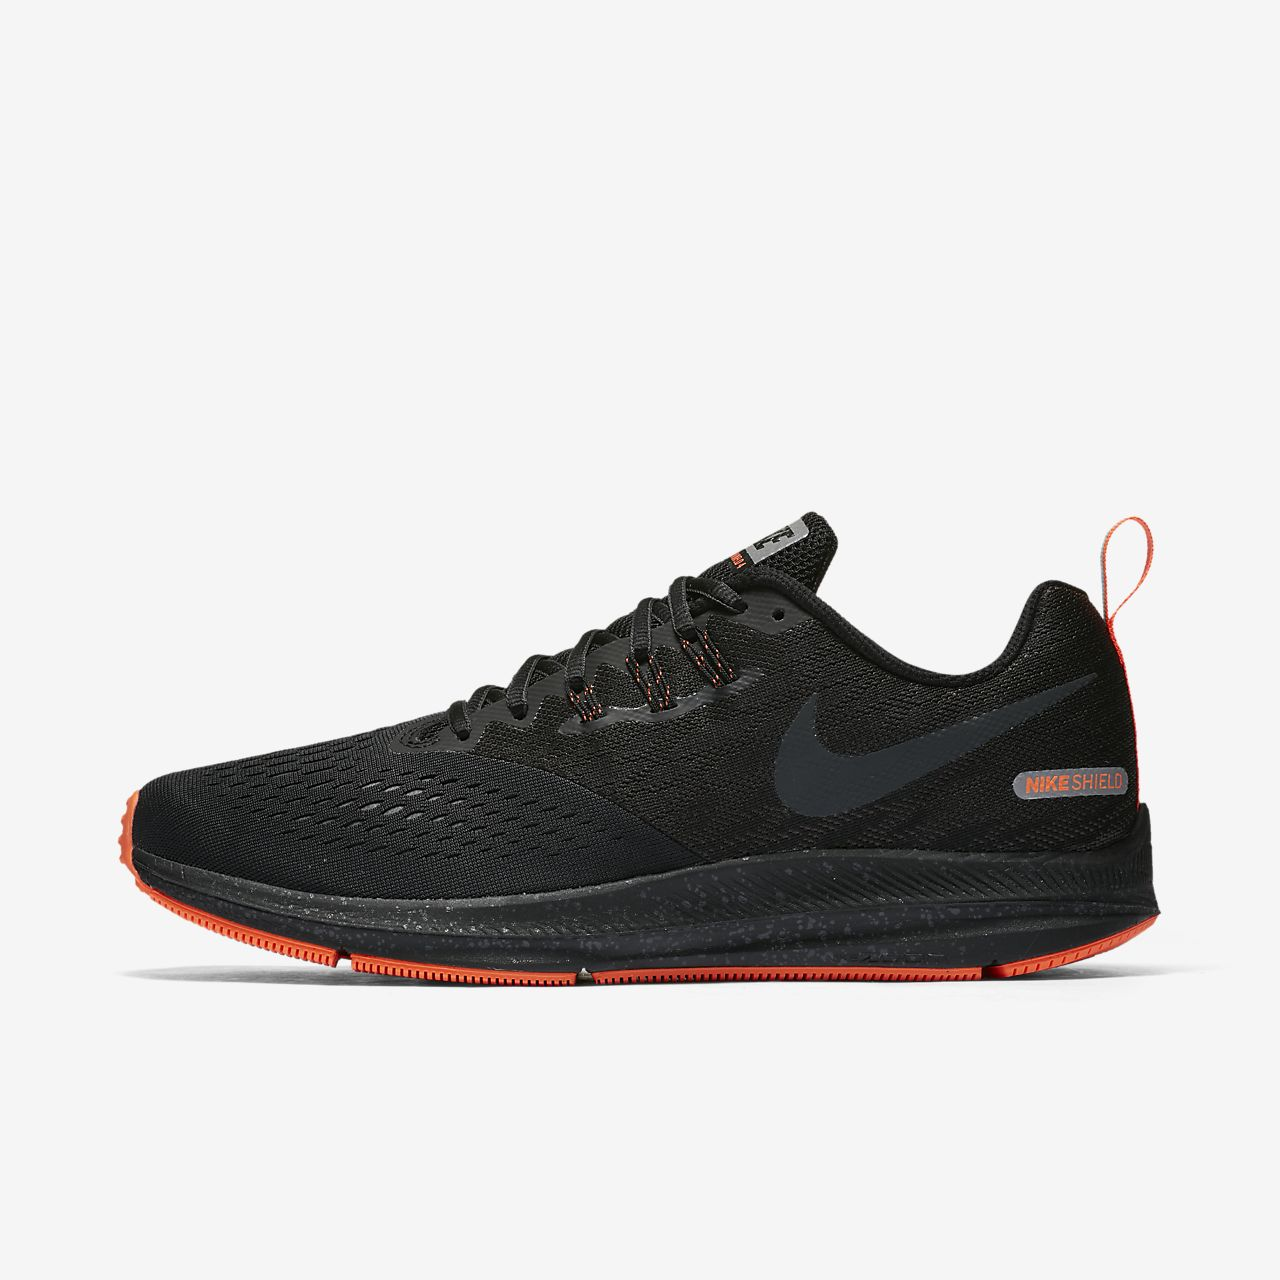 Nike Zoom Winflo 4 Shield 男子跑步鞋